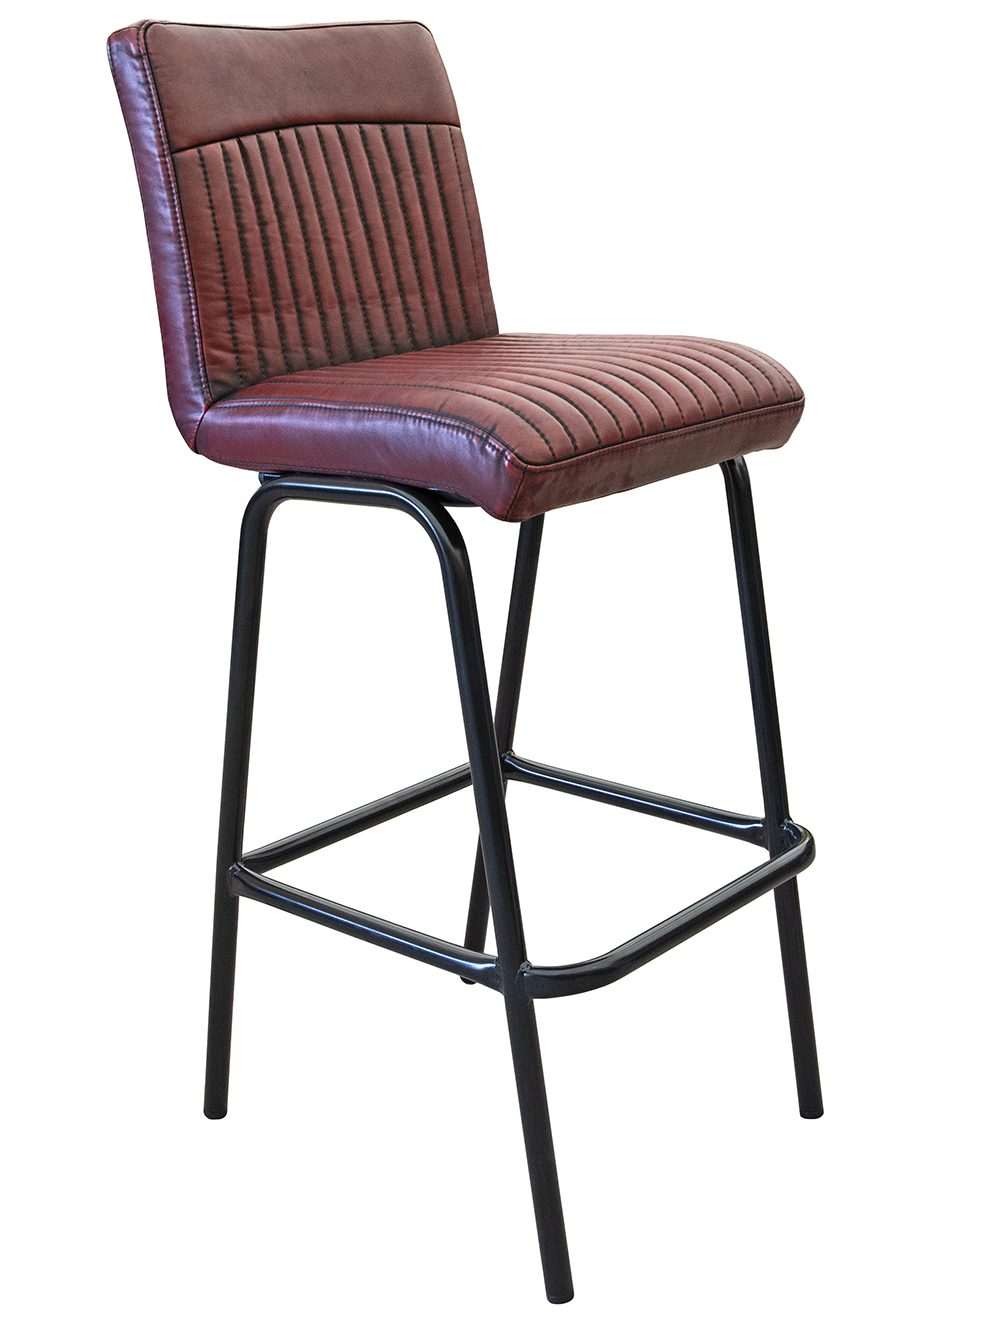 Custom Goodwood High Stools Available